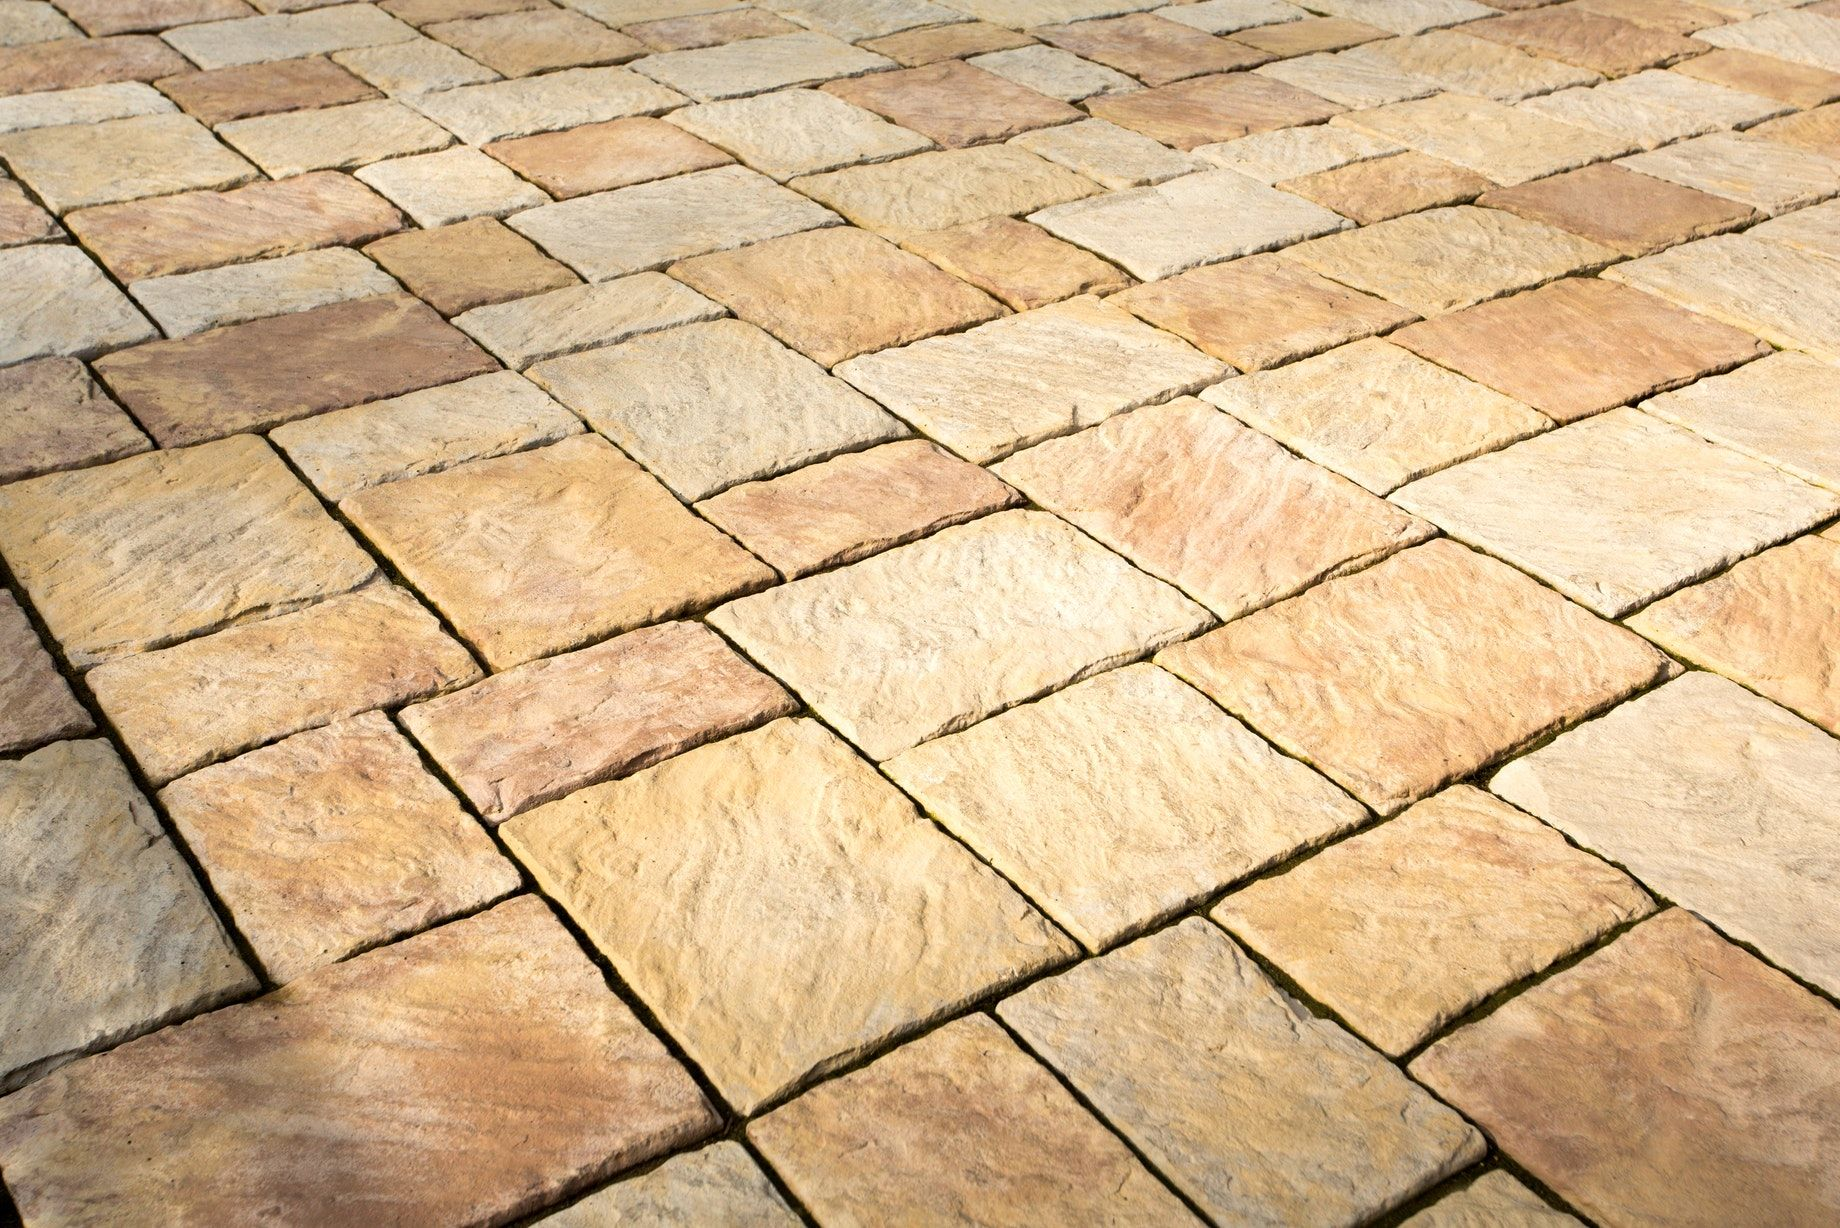 detailed natural stone texture of New Mission pavers